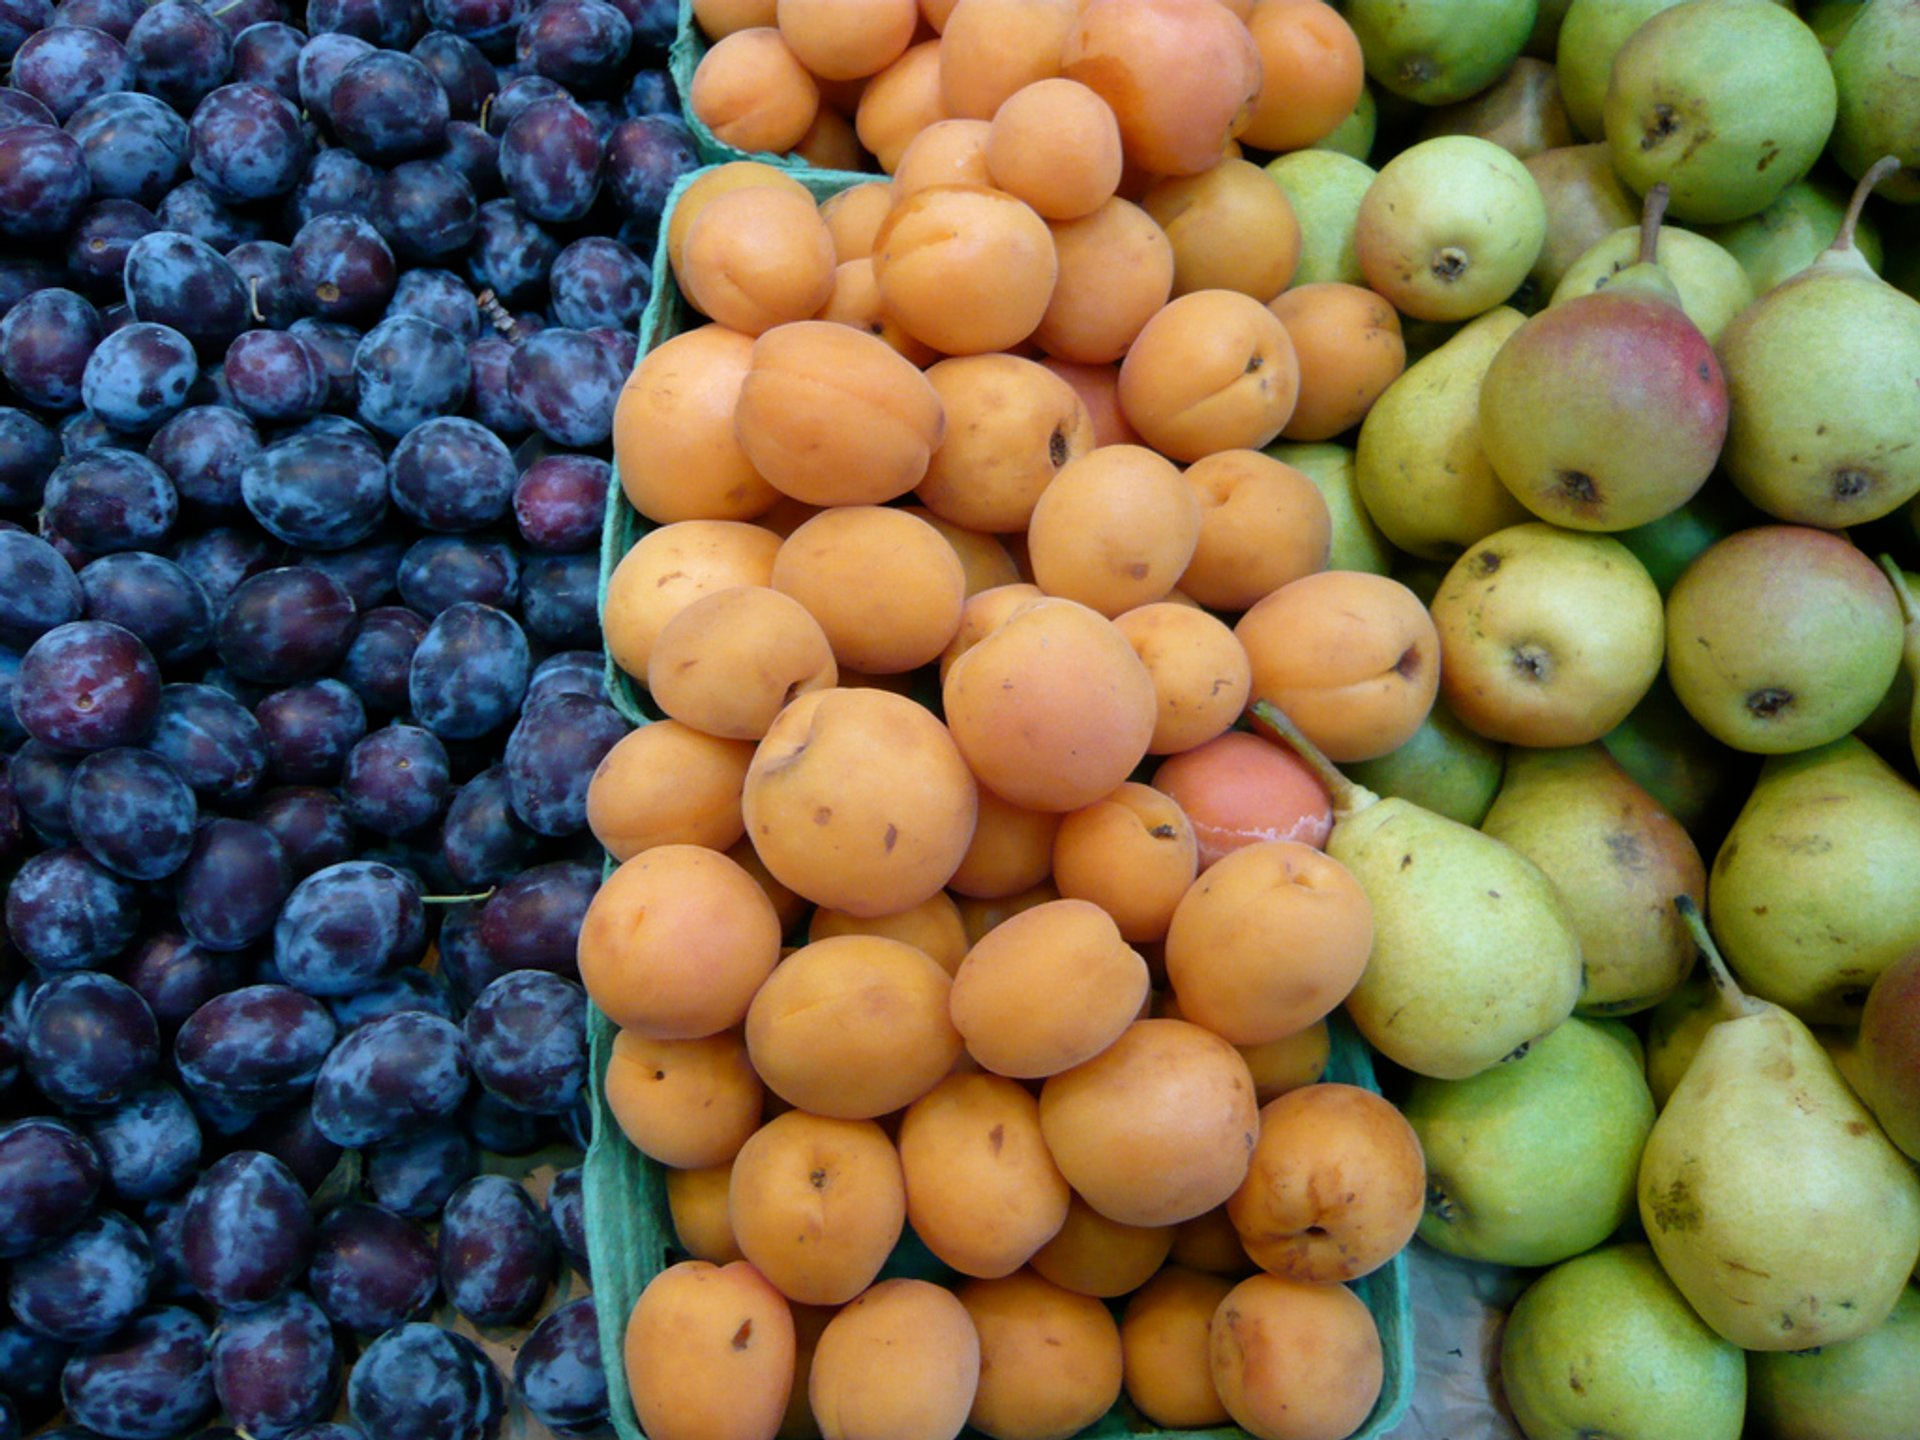 Plums, apricots, and pears at the Granville Island Public Market 2019